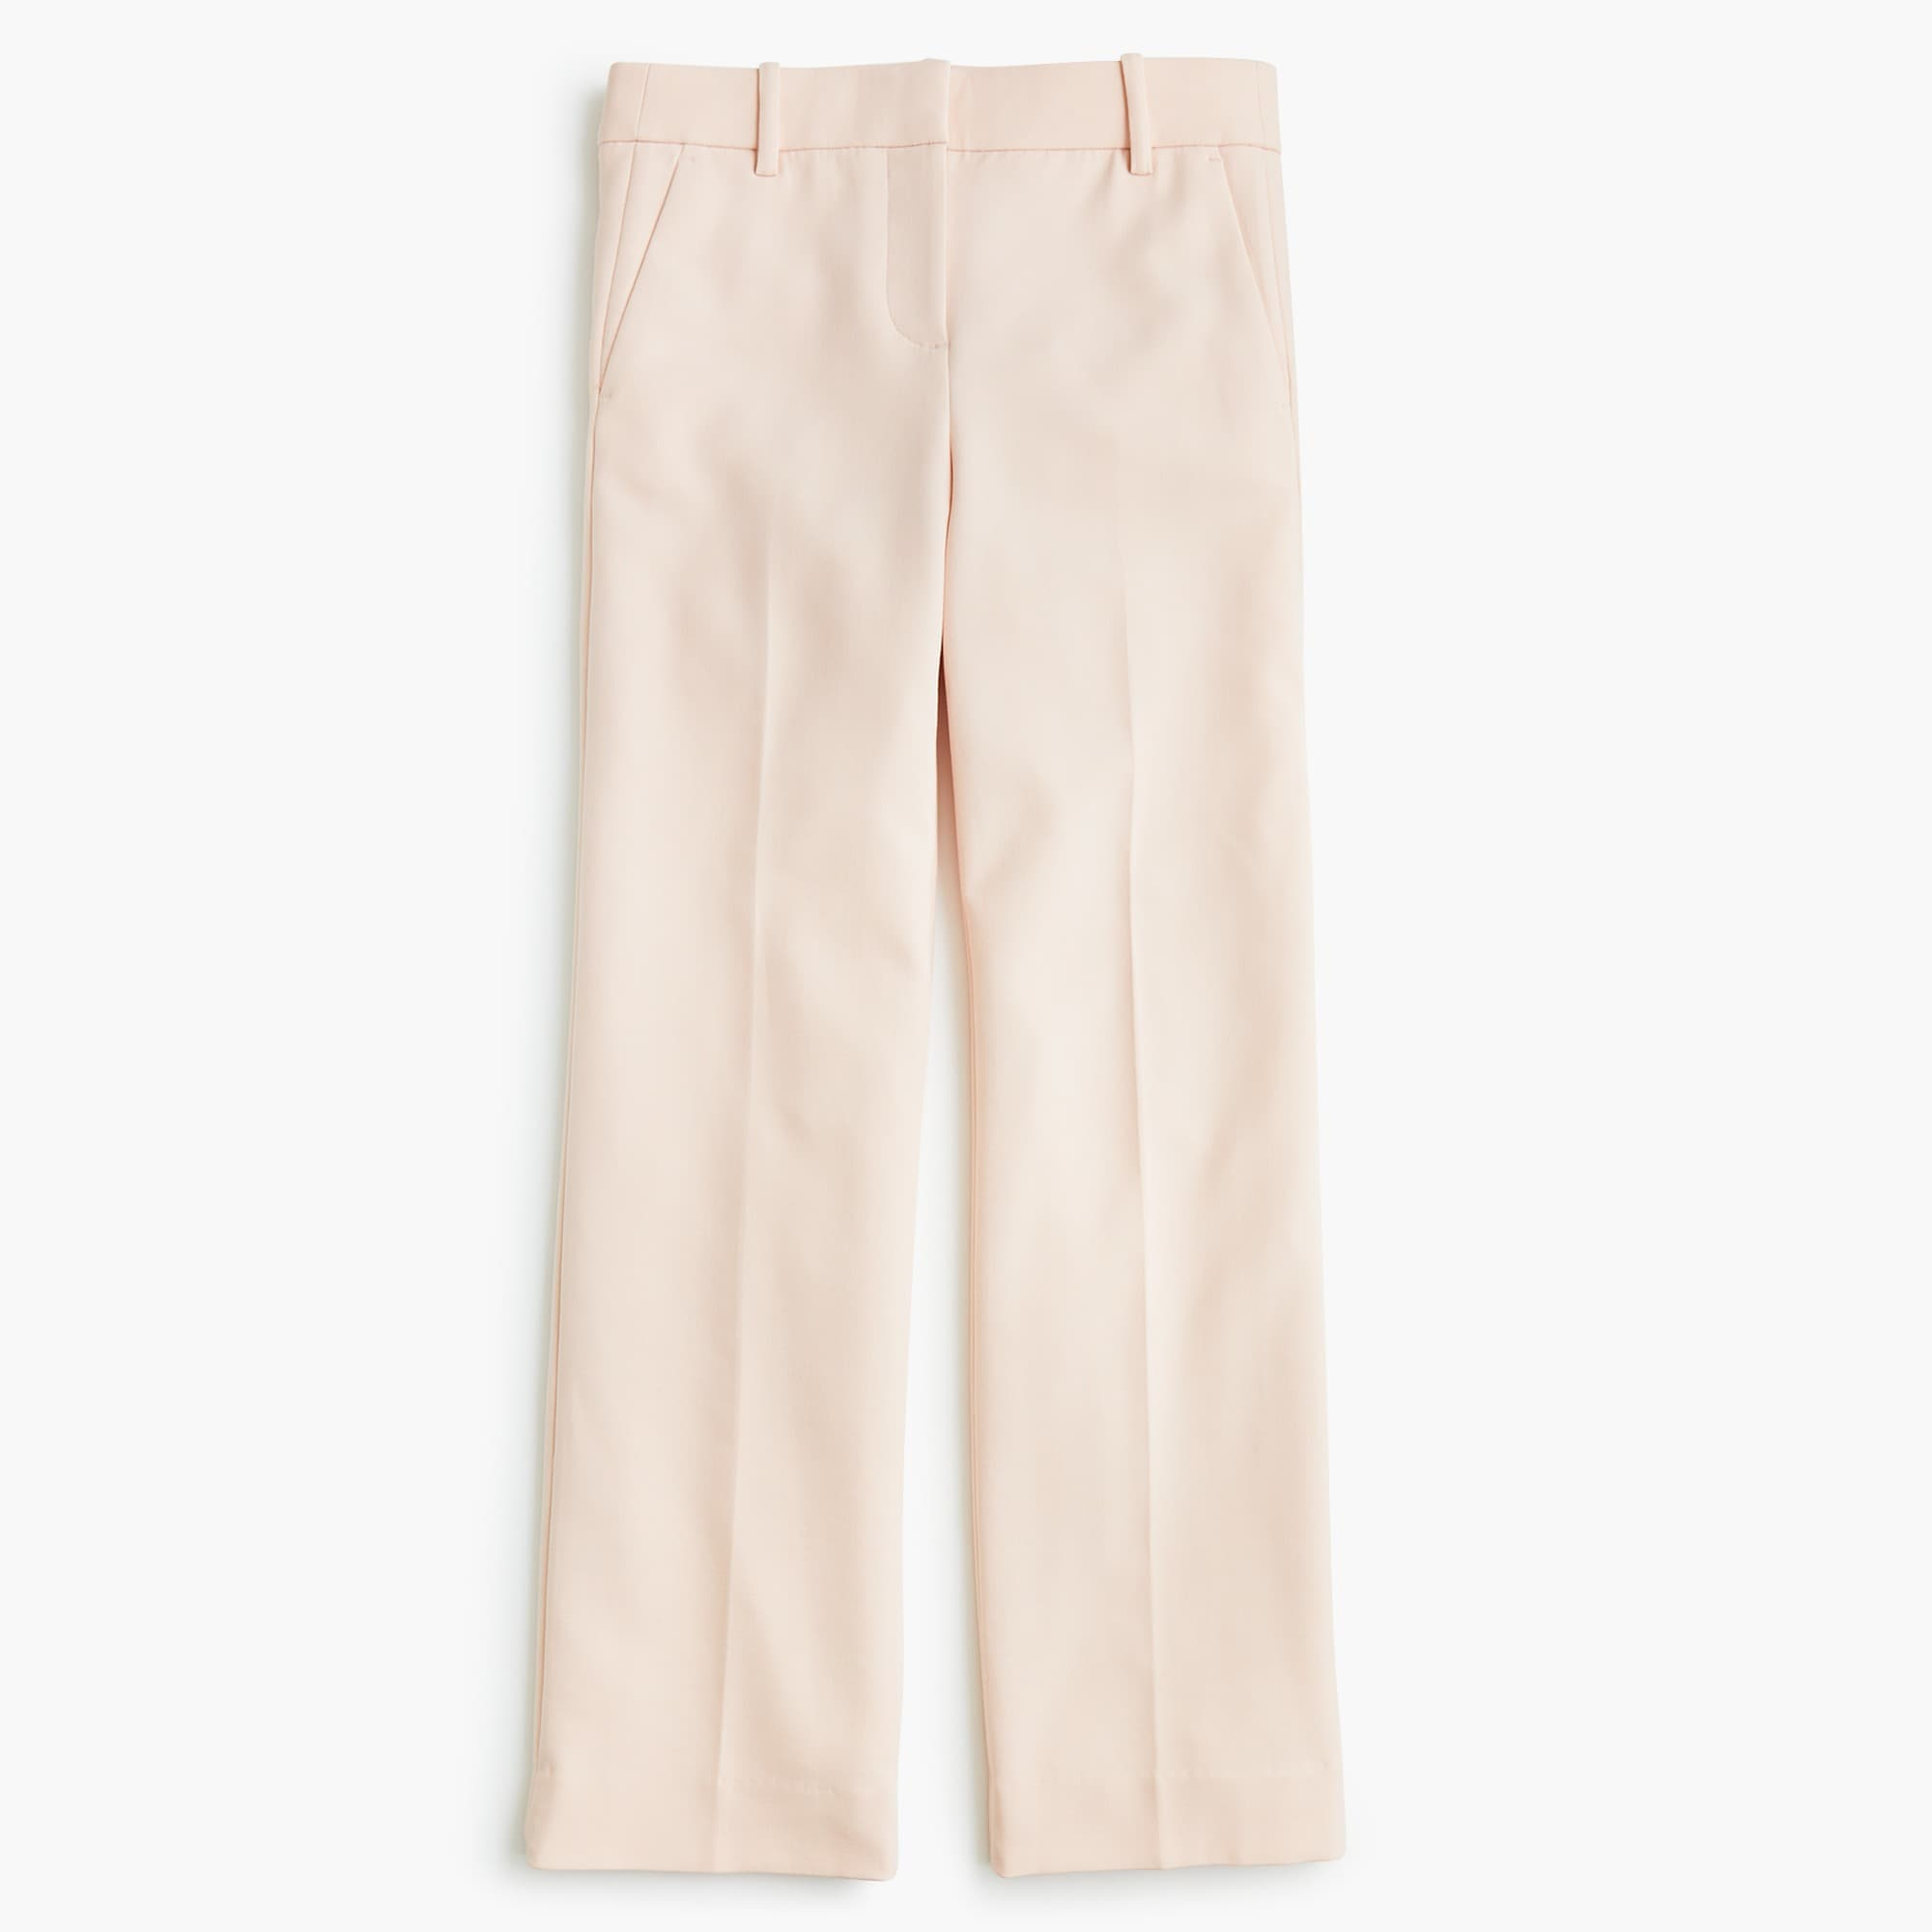 Classic High-rise Peyton wide-leg pant in four-season stretch